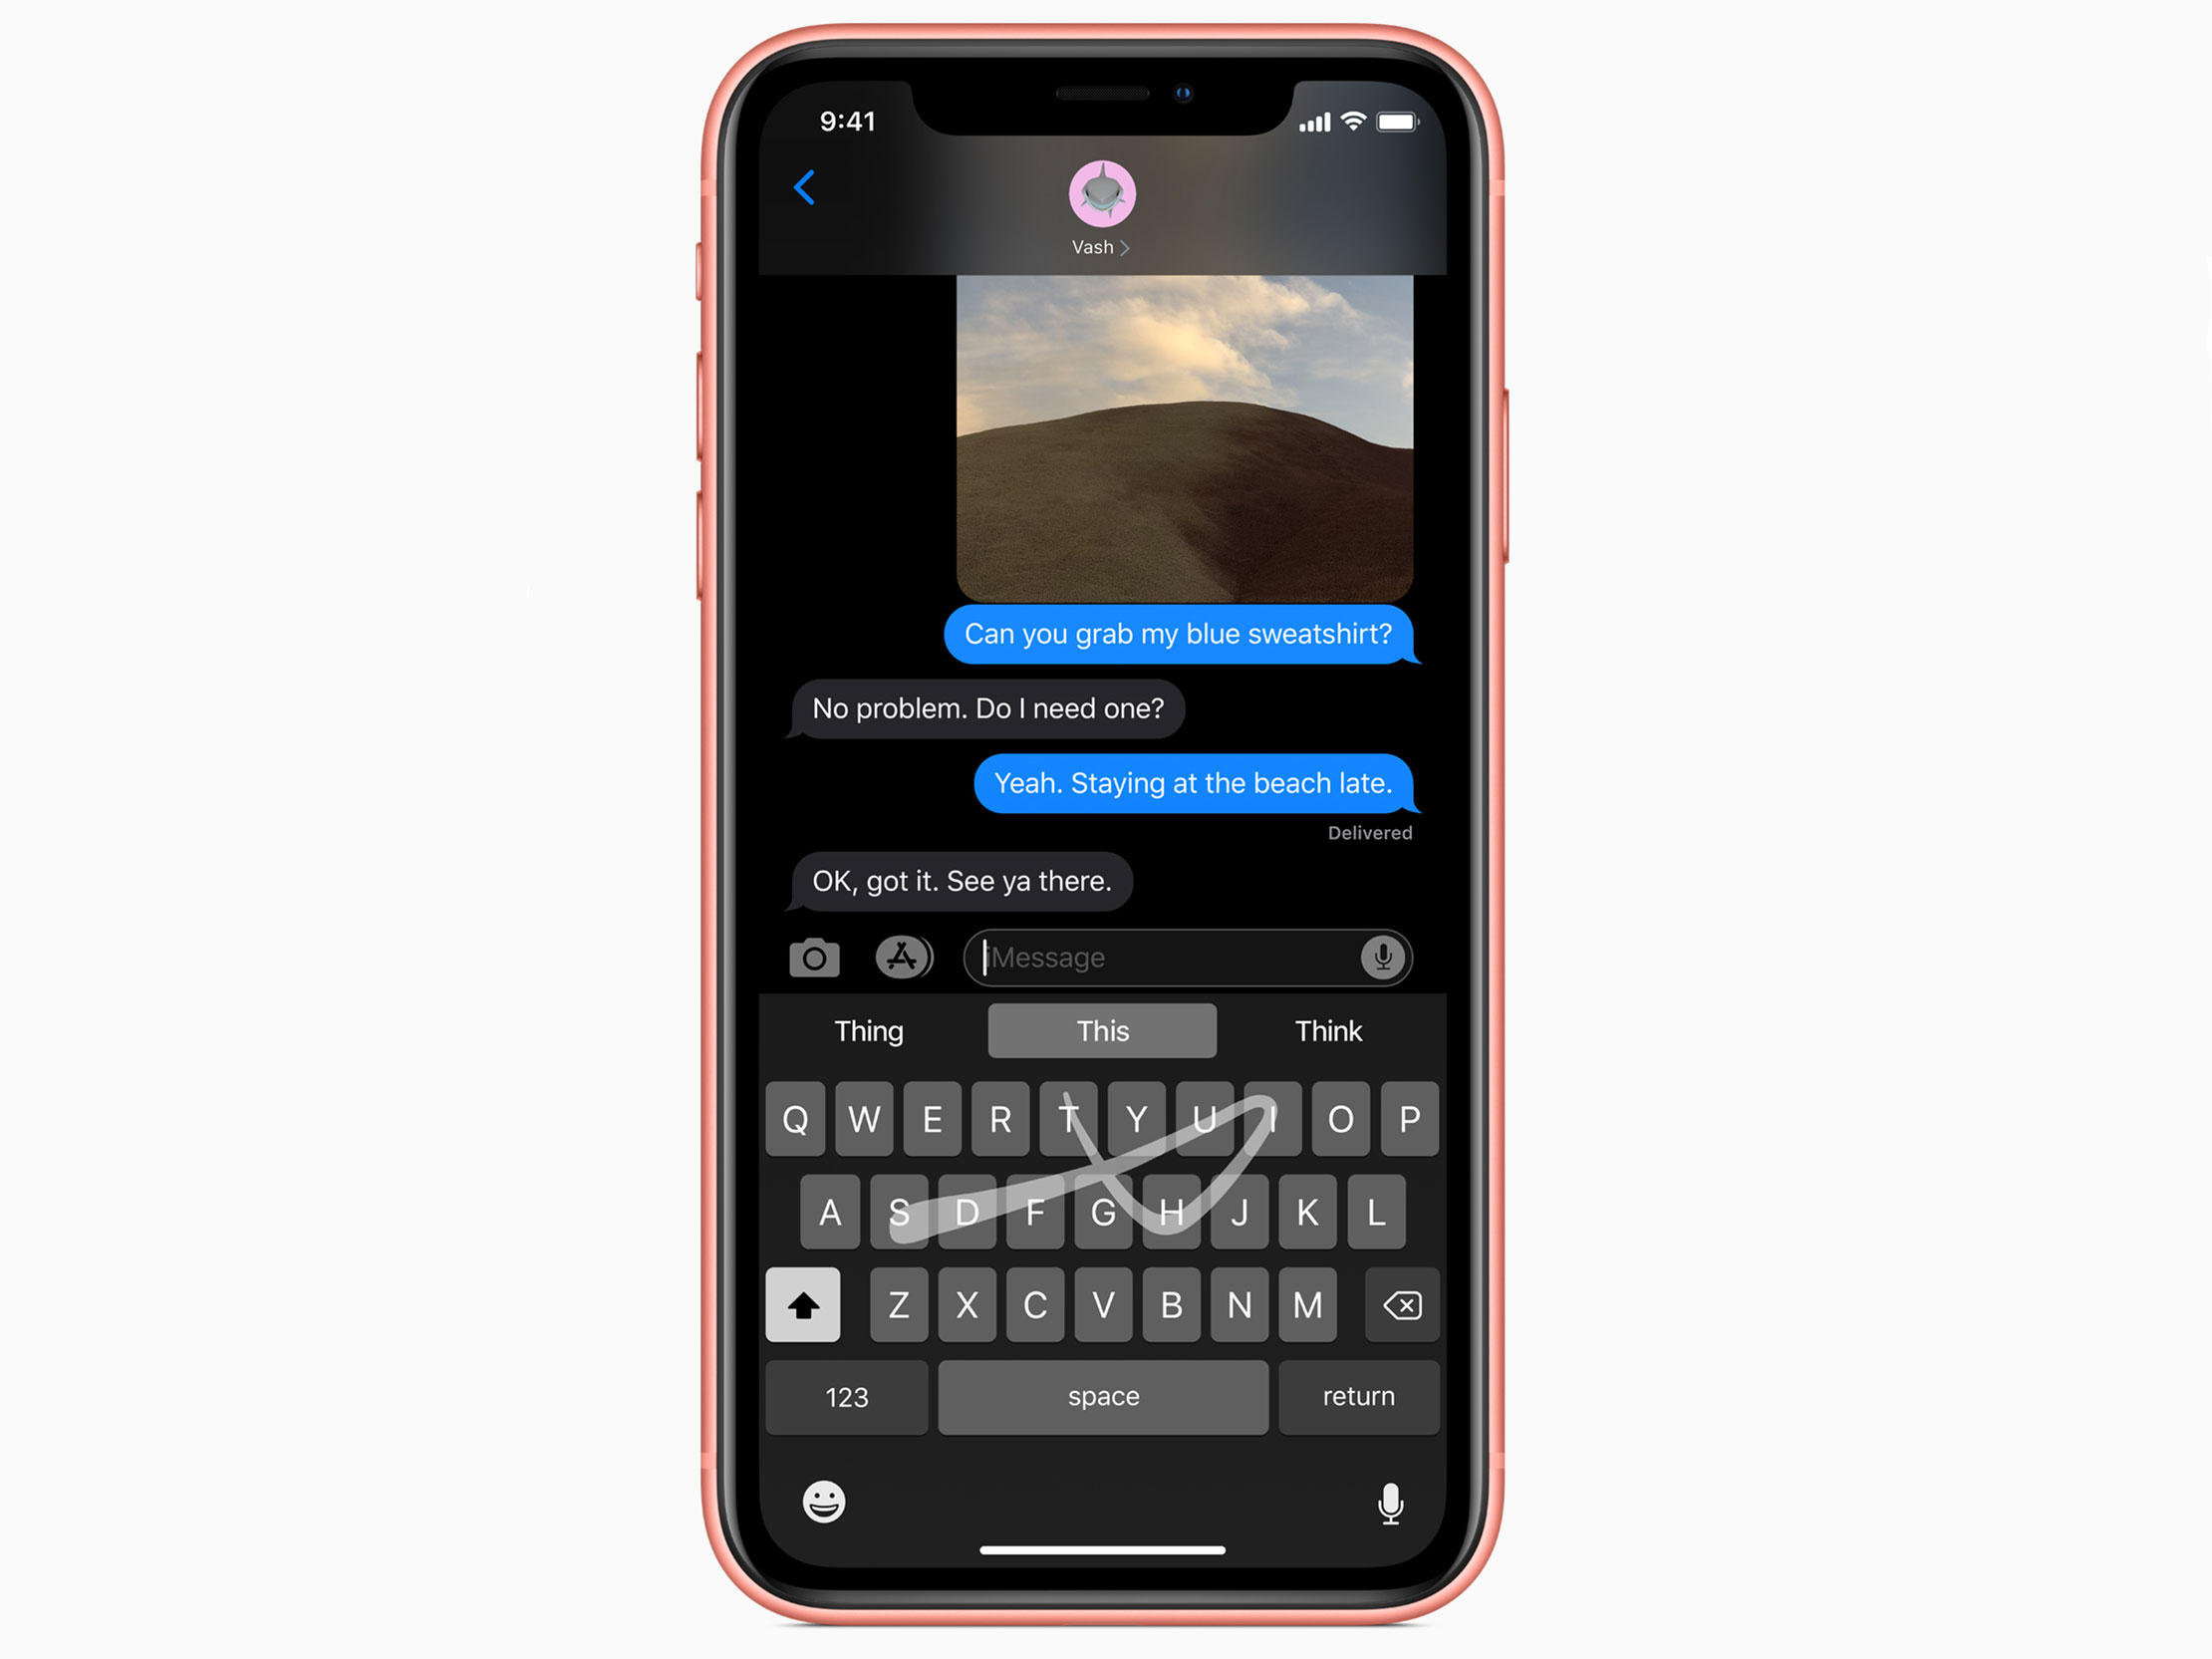 iOS 13 Quickpath typing